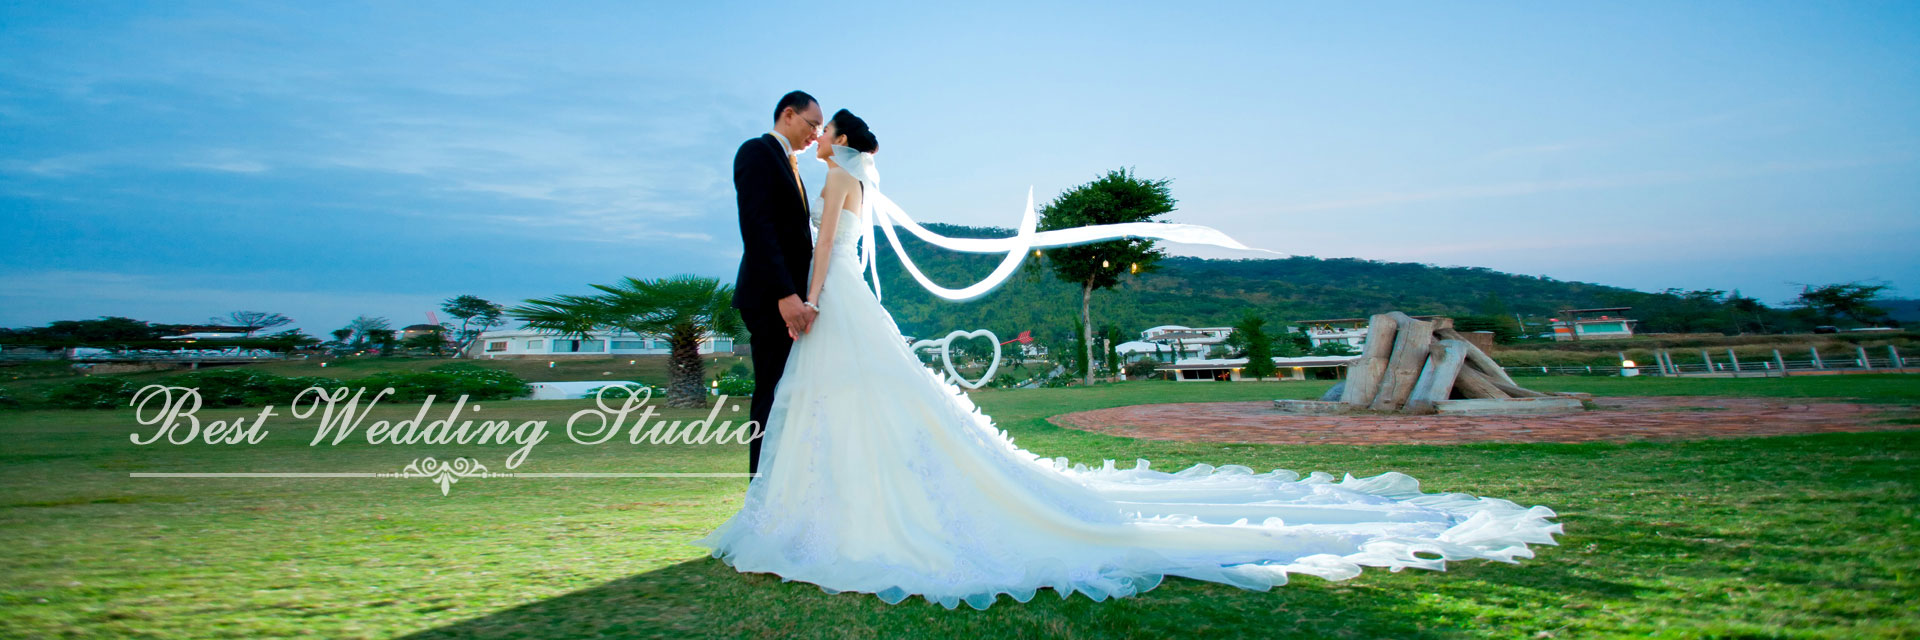 bestweddingstudio11